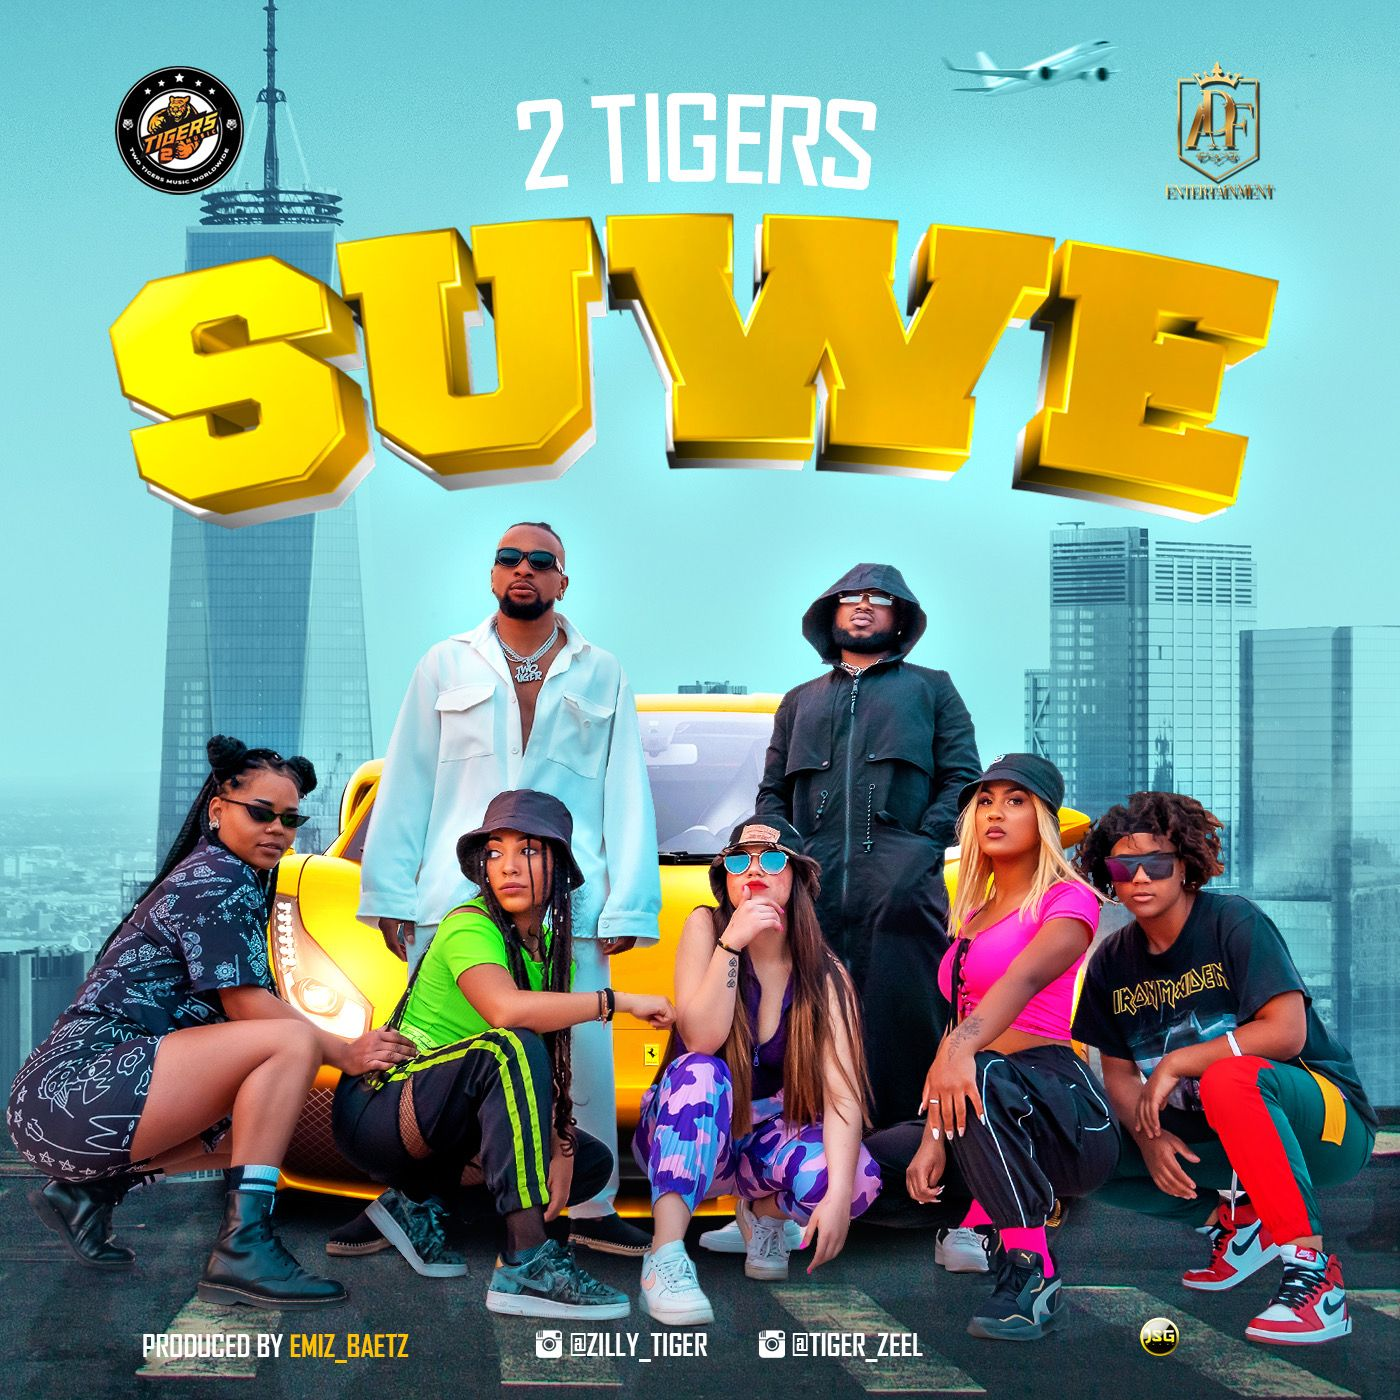 Two Tigers - Suwe